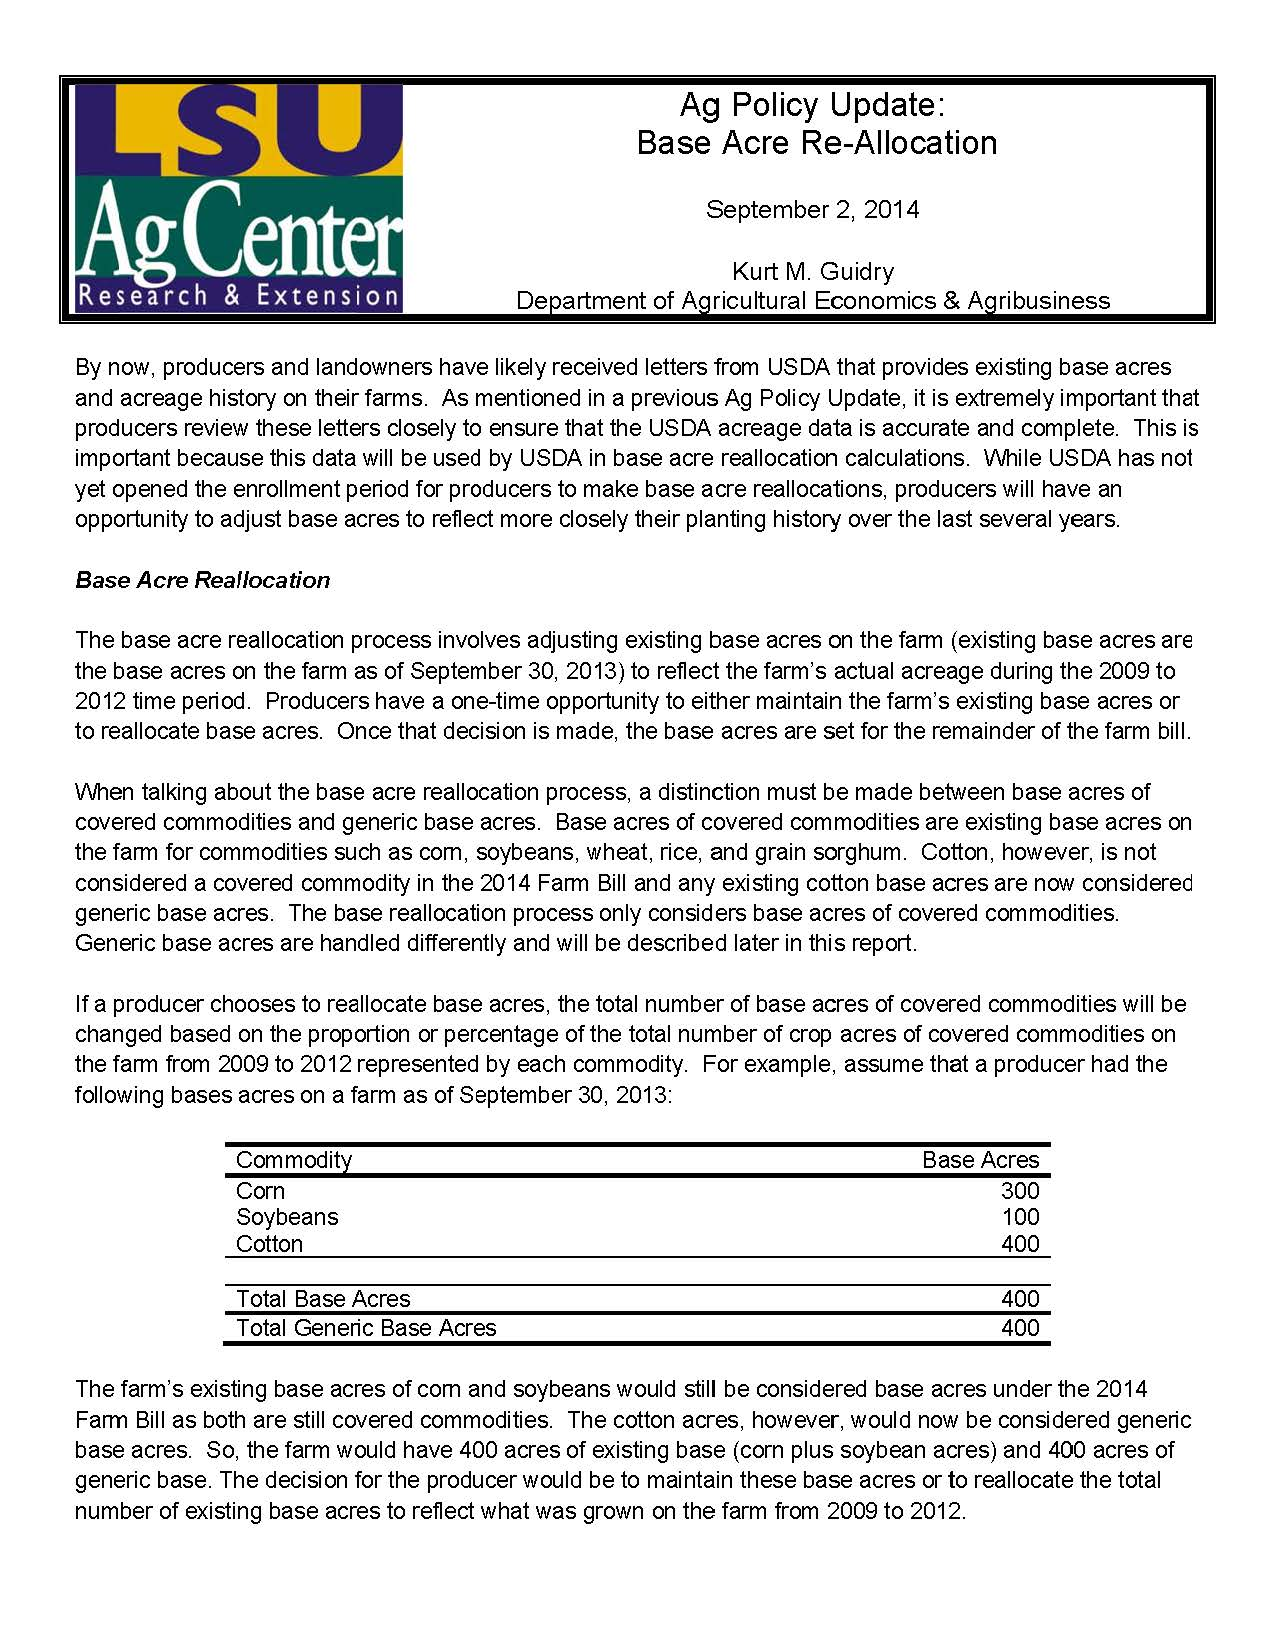 Ag Policy Update: Base Acre Reallocation